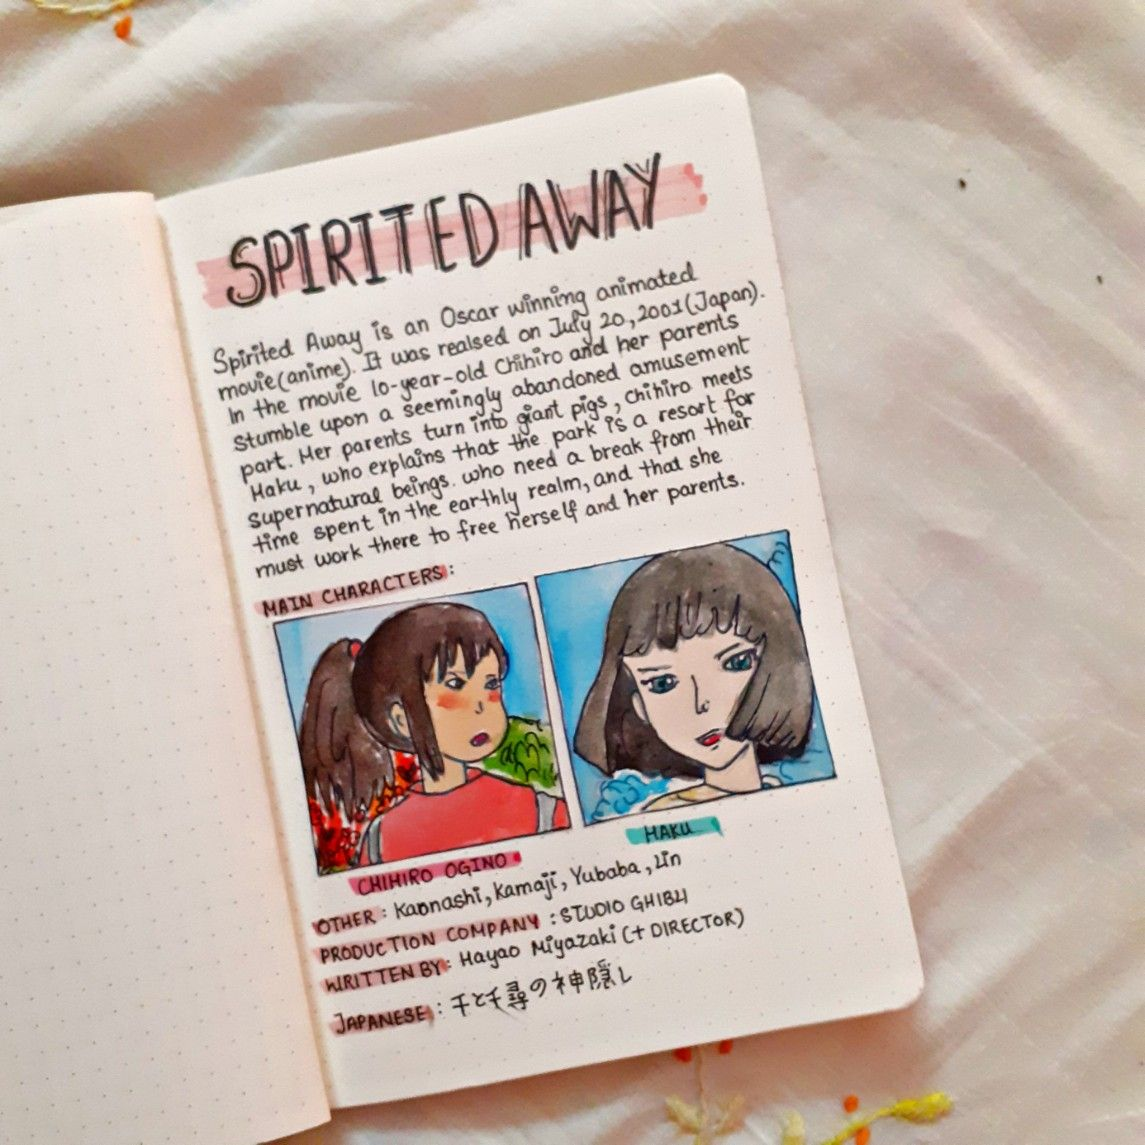 Anime Journal In 2020 Anime Spirited Away Animated Movies